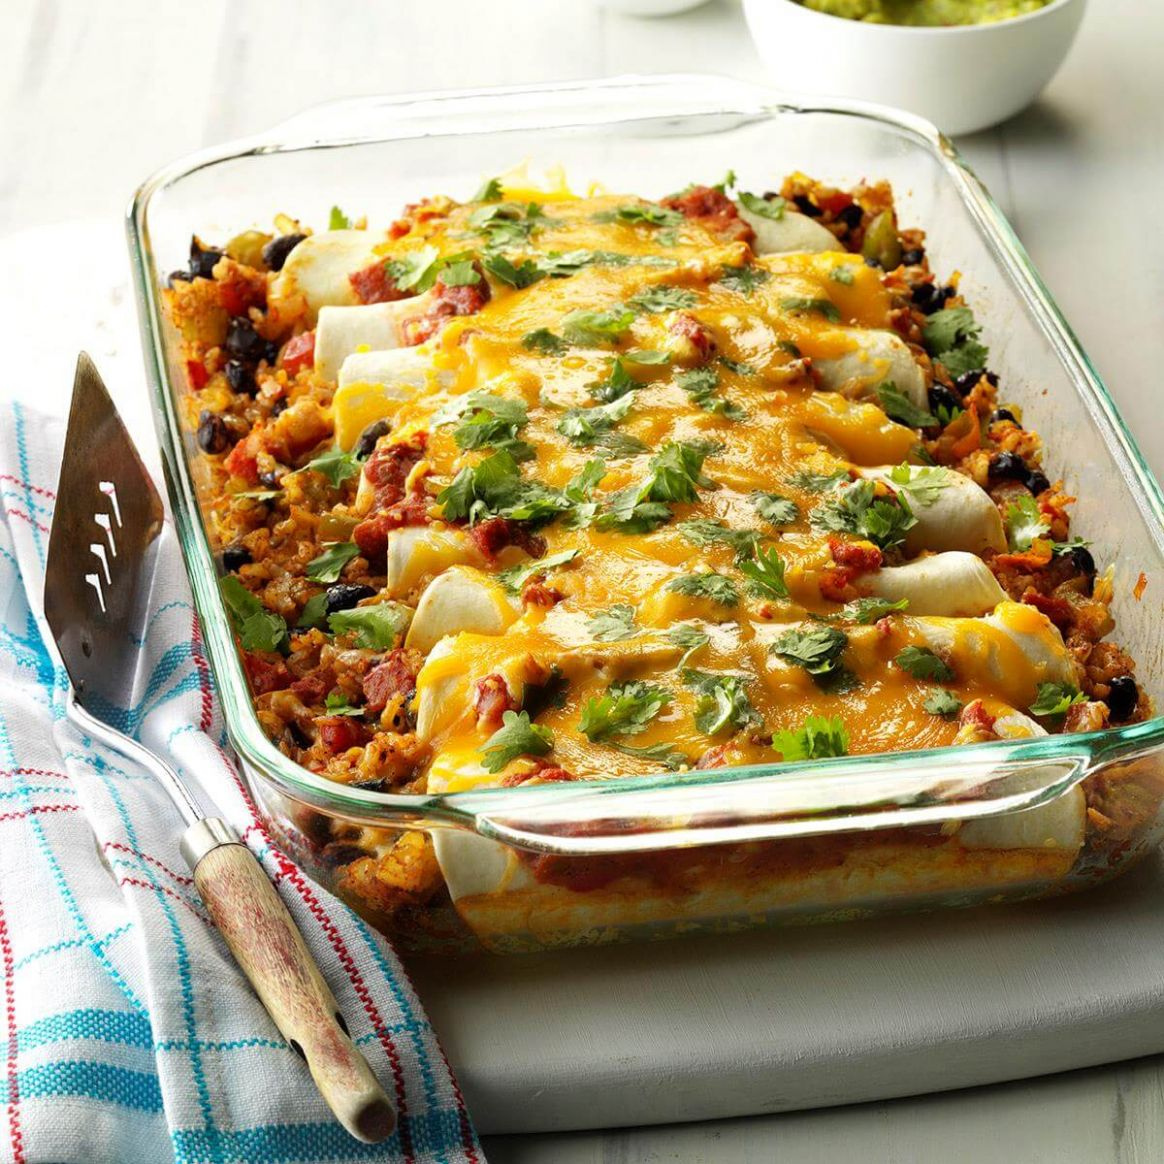 8 Dinner Recipes for Weight Loss | Taste of Home